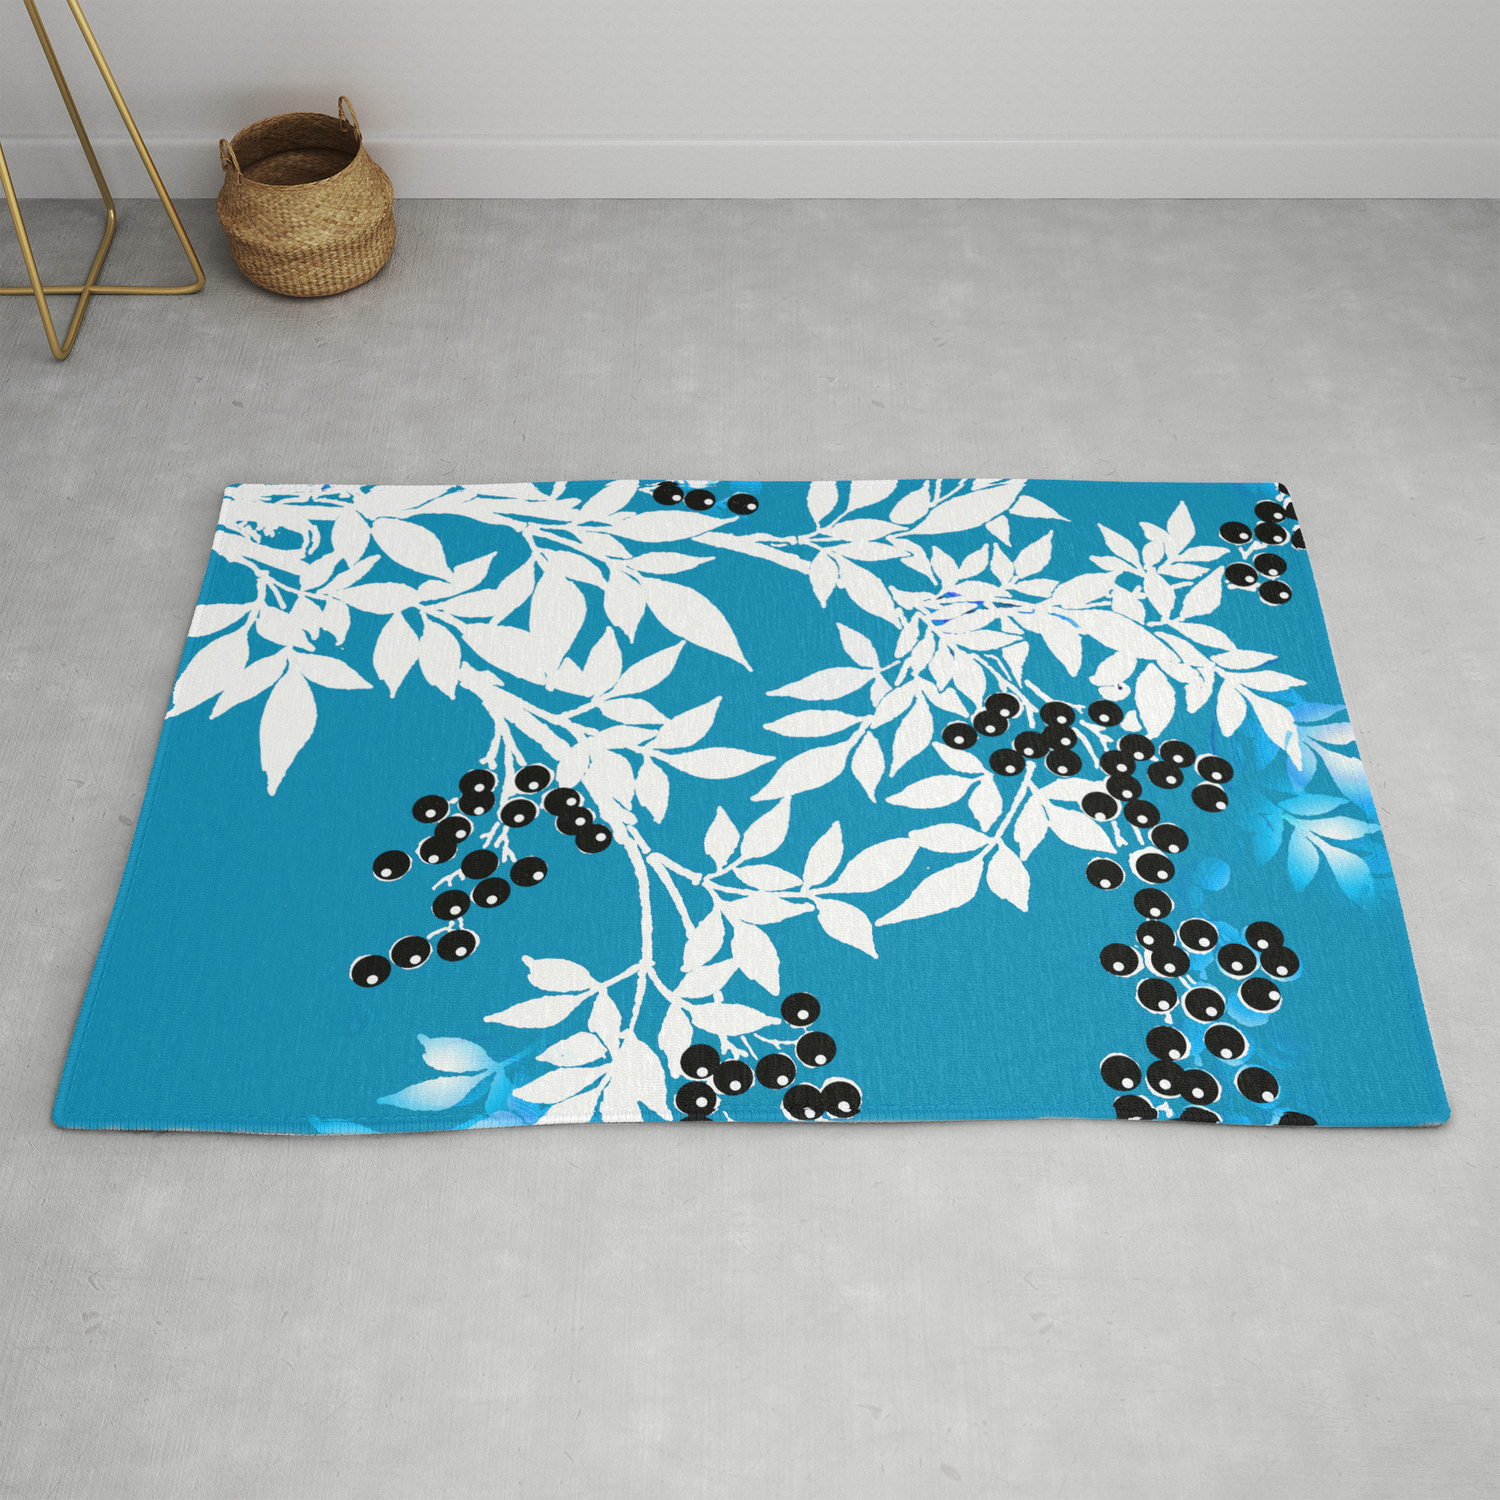 Blue And White With Black Berries Toile